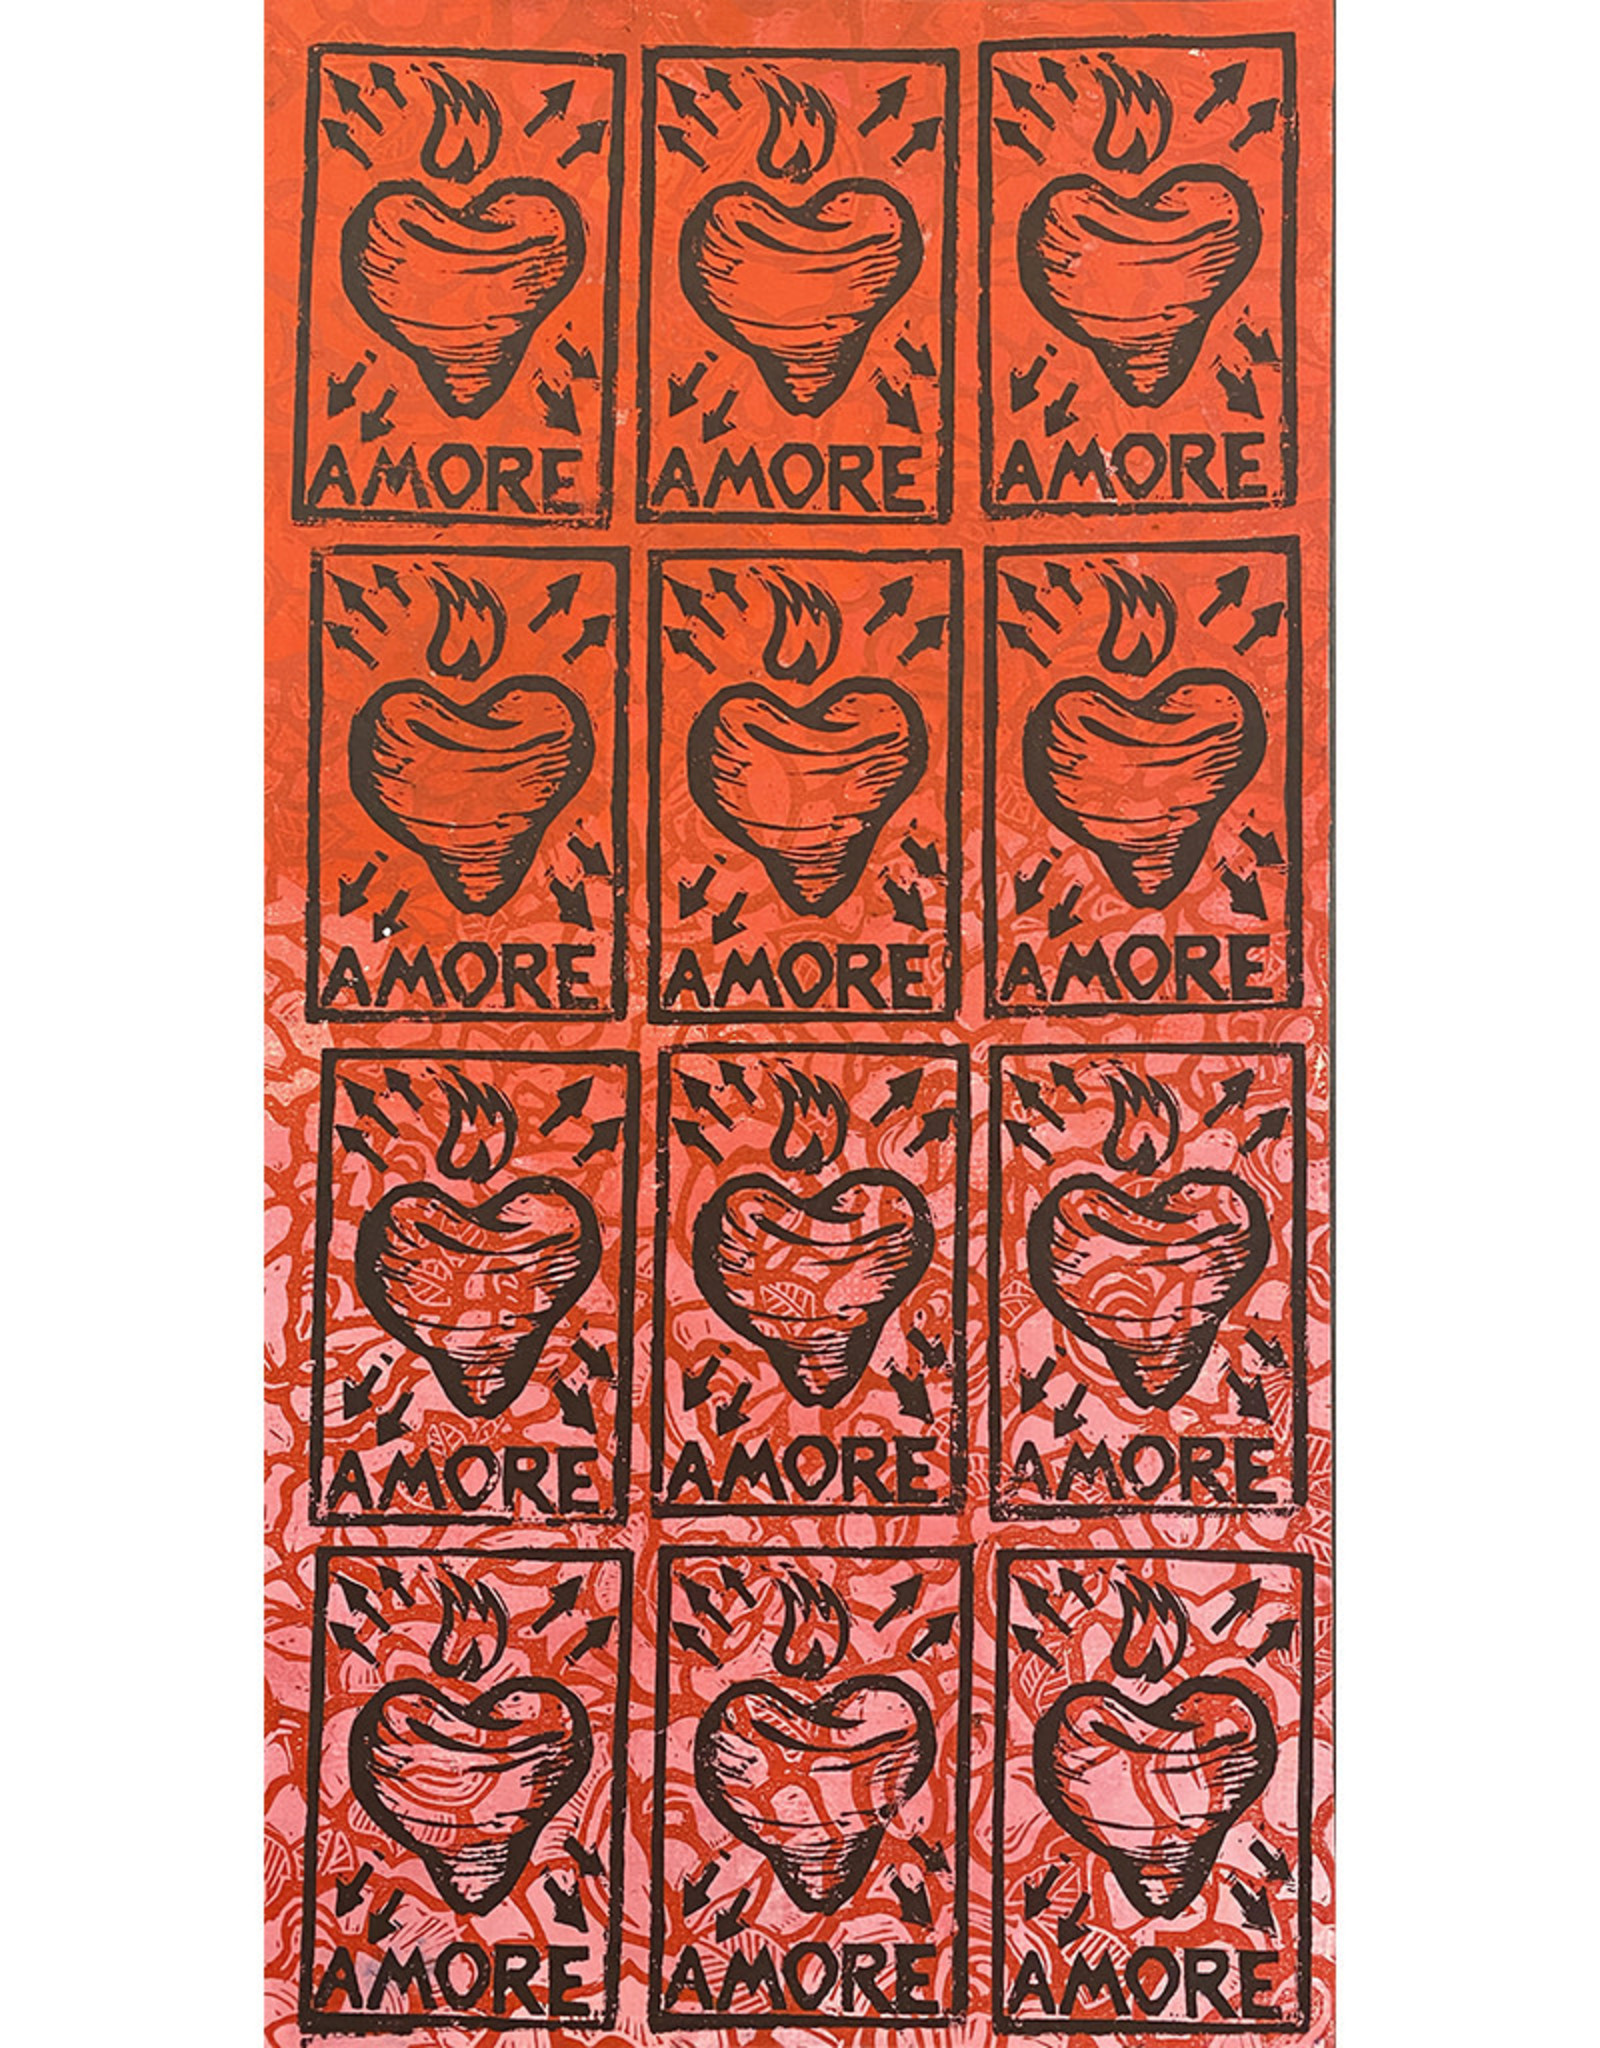 "Paul Punzo ""Amore"" Print by Paul Punzo"